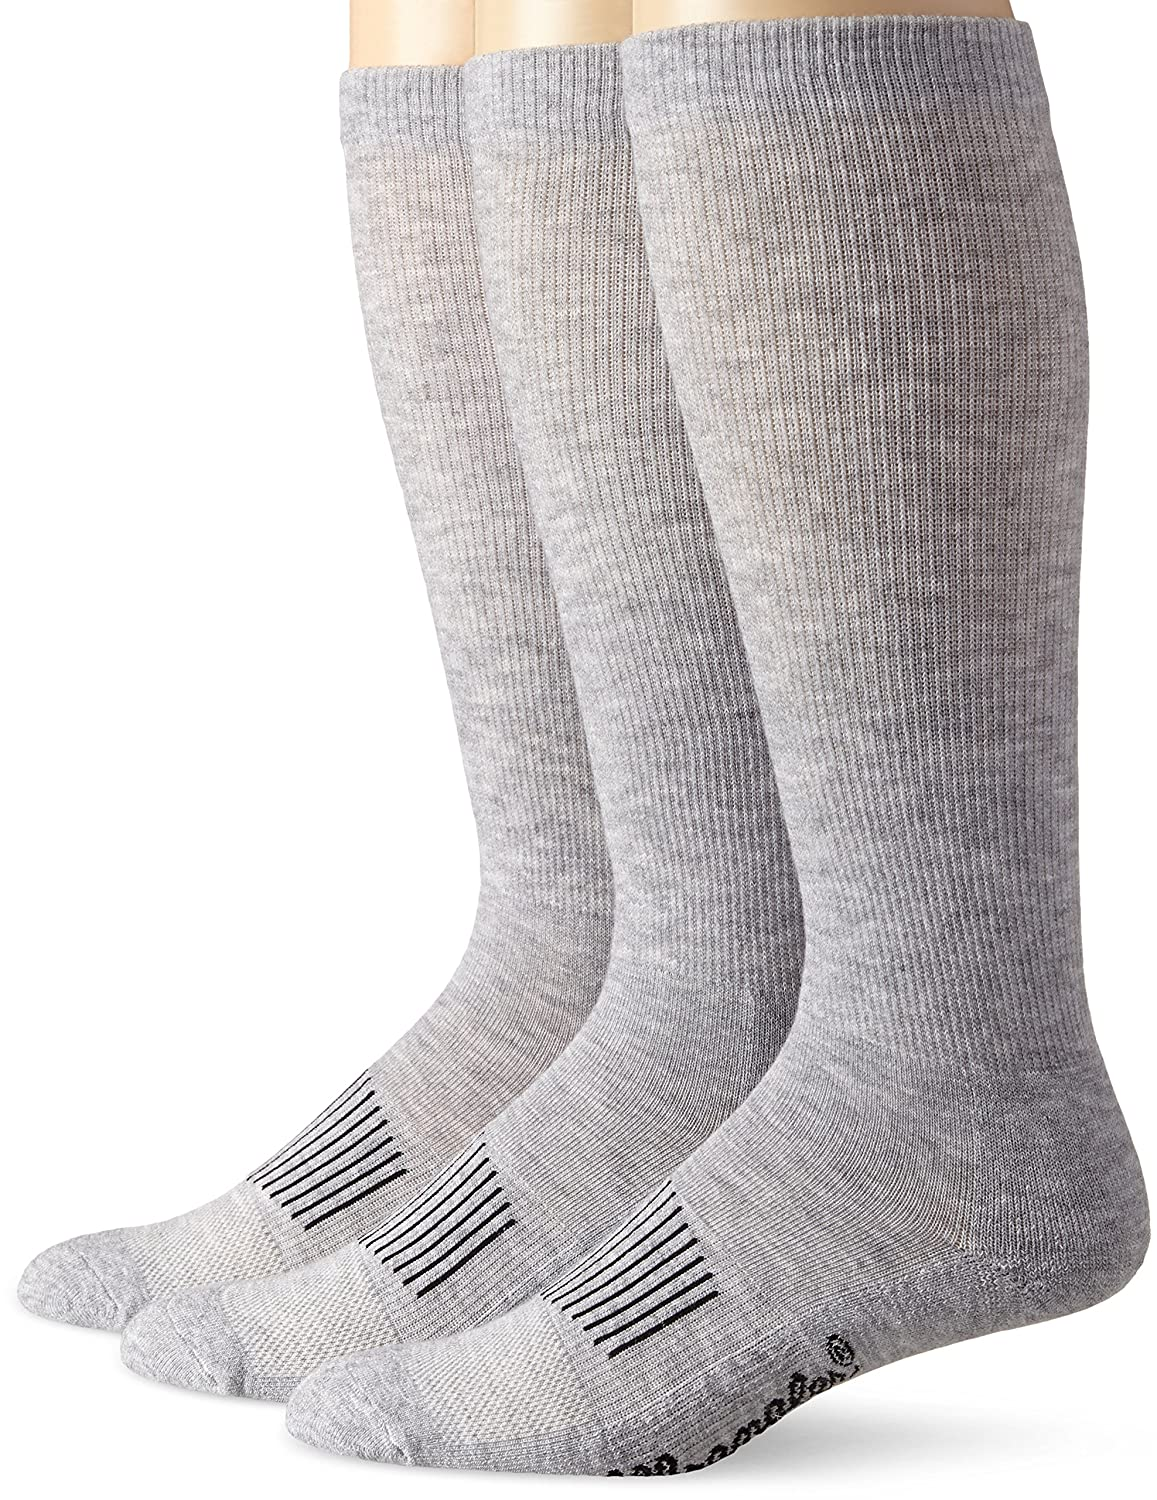 Wrangler Men's Western Boot Socks (Pack of 3): Amazon.in: Clothing & Accessories